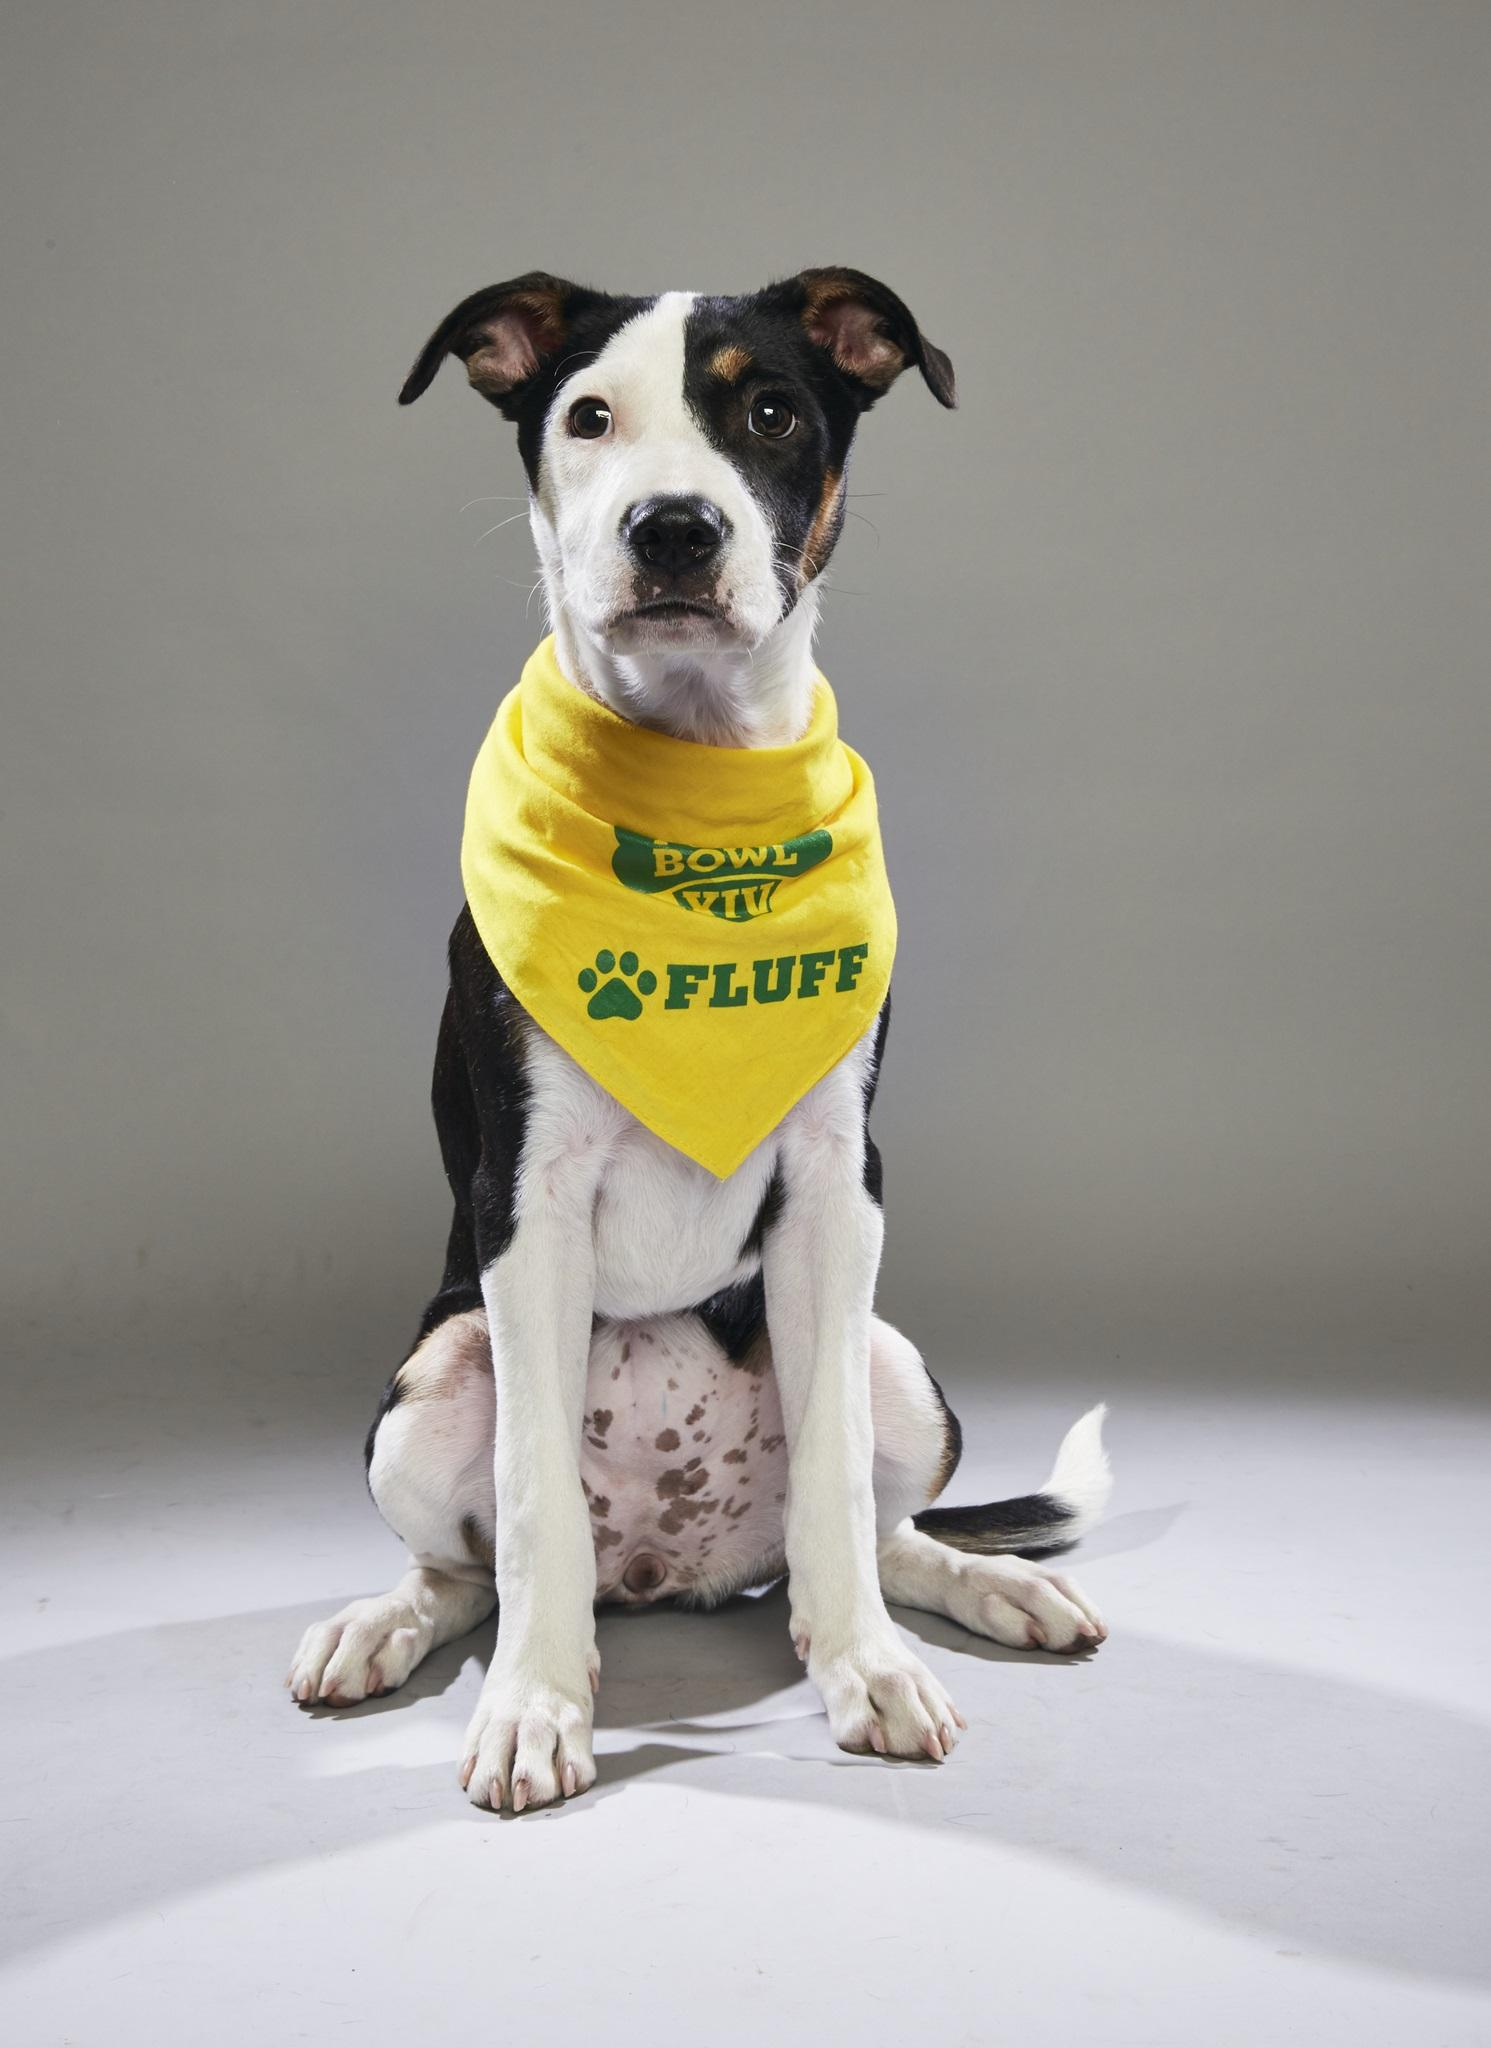 Iris will be seen in Animal Planet's Puppy Bowl.